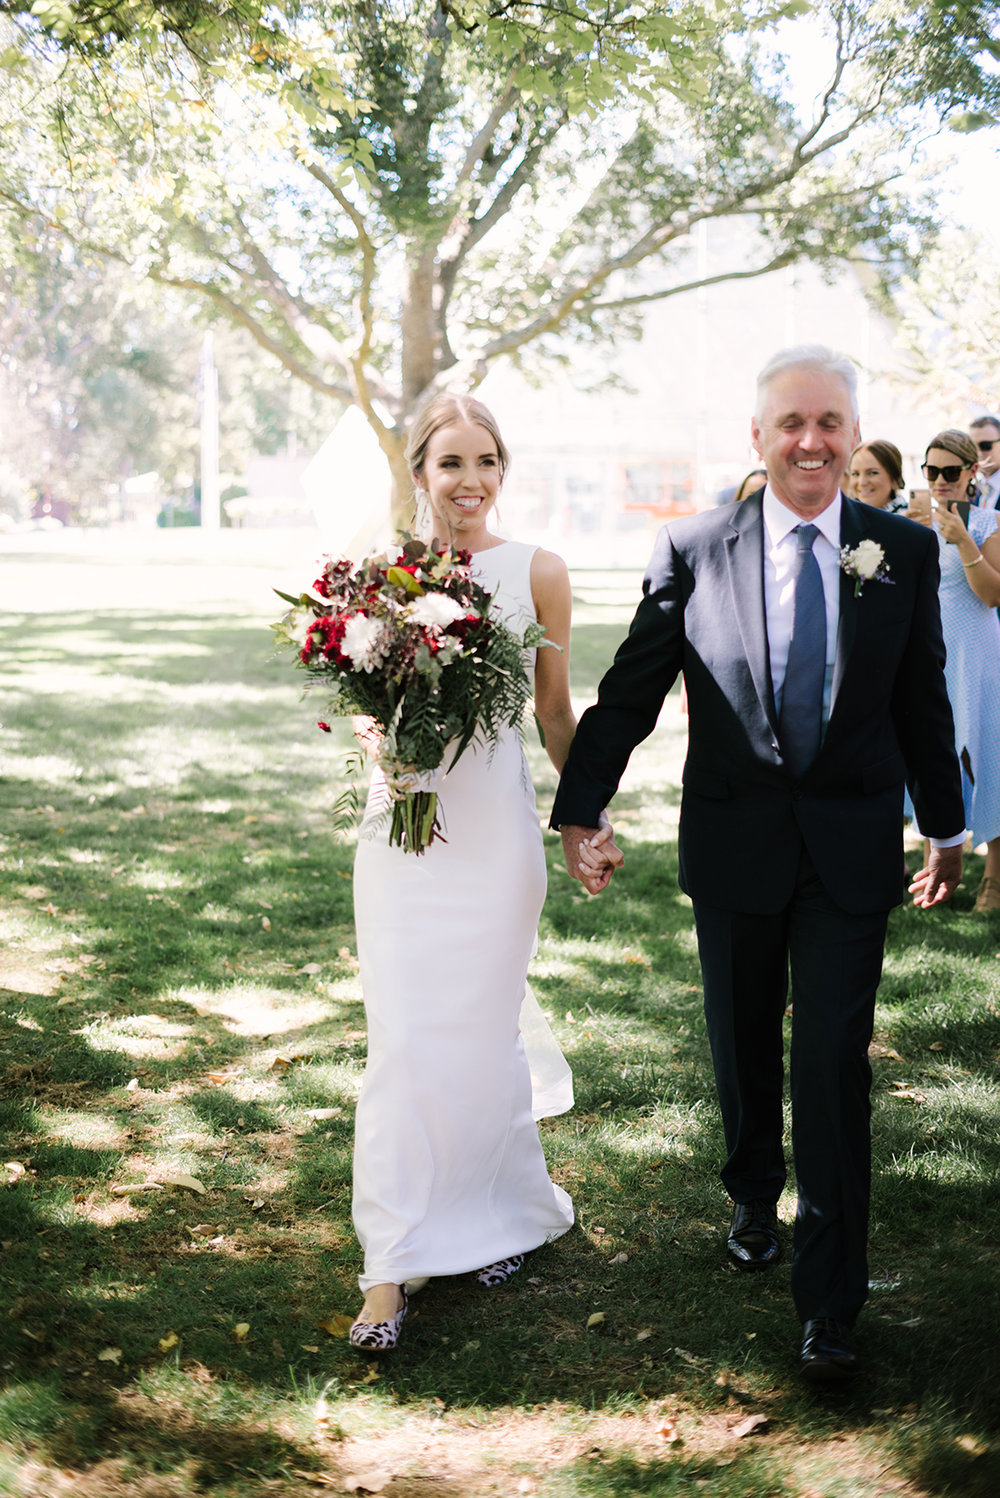 I_Got_You_Babe_Co._Megan_Andrew_Country_Property_Wedding_Victoria0028.JPG